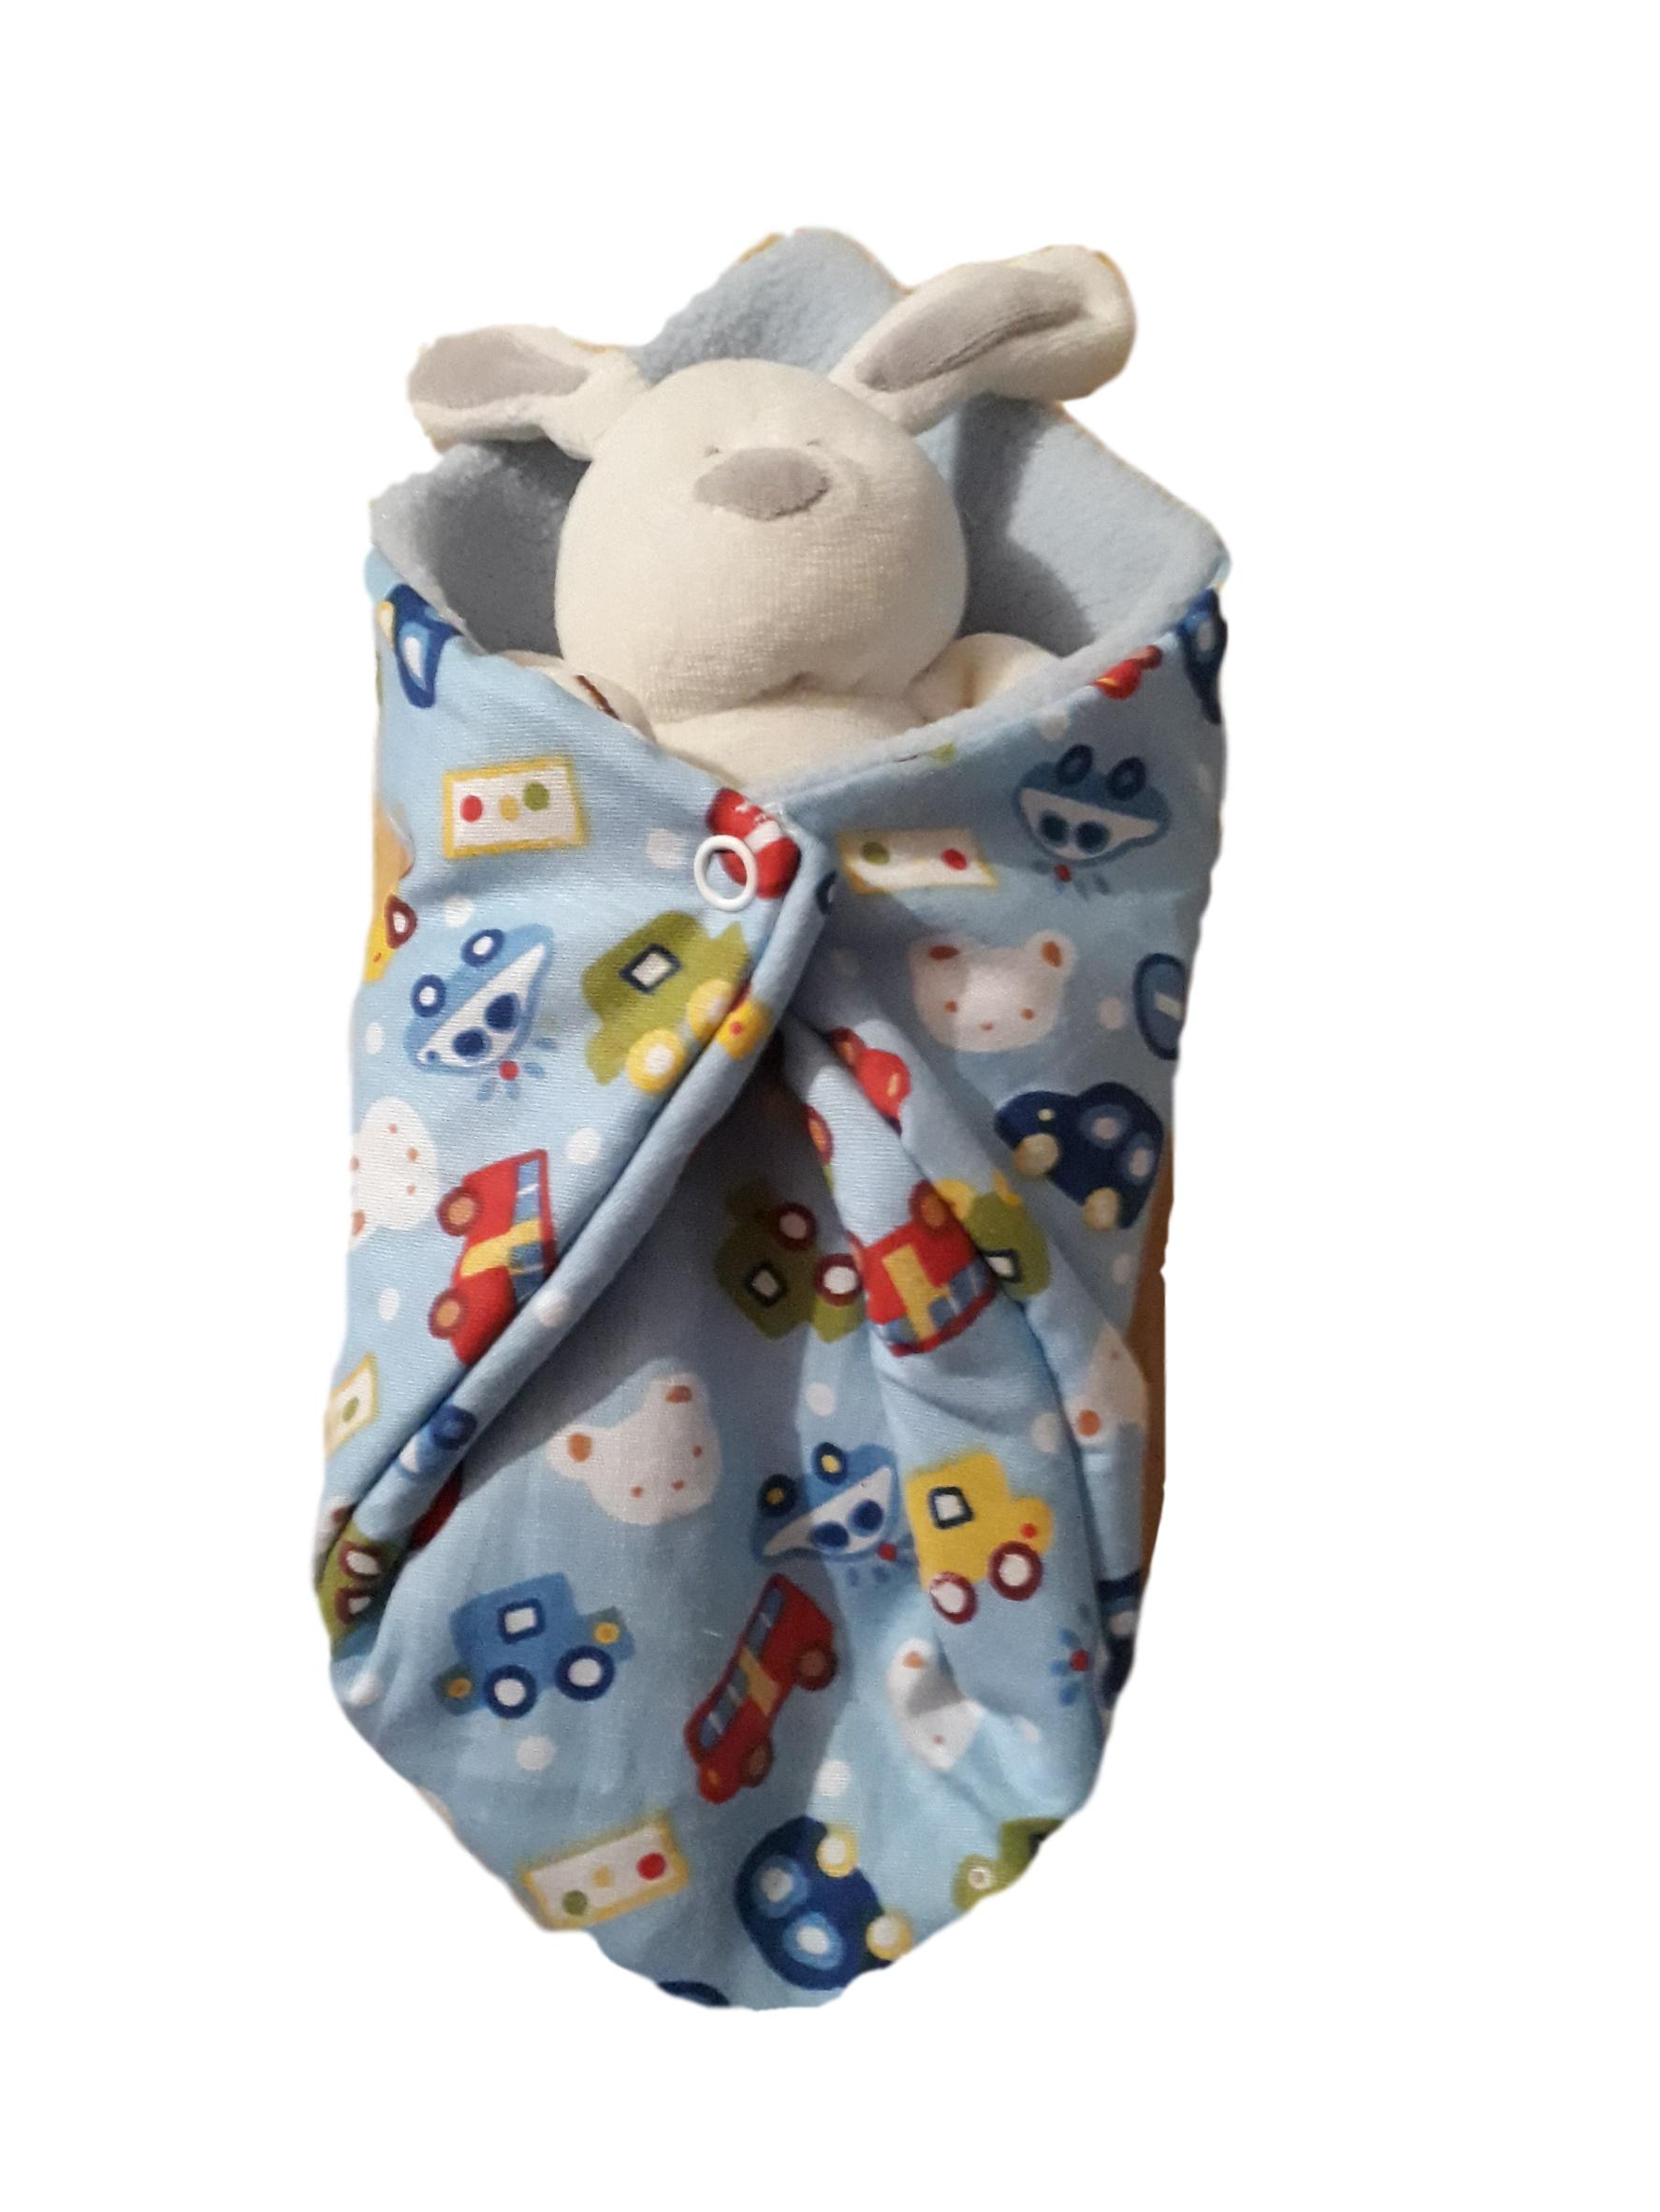 baby bereavement fetal demise pouches RIDE ALONG born AT 20 weeks